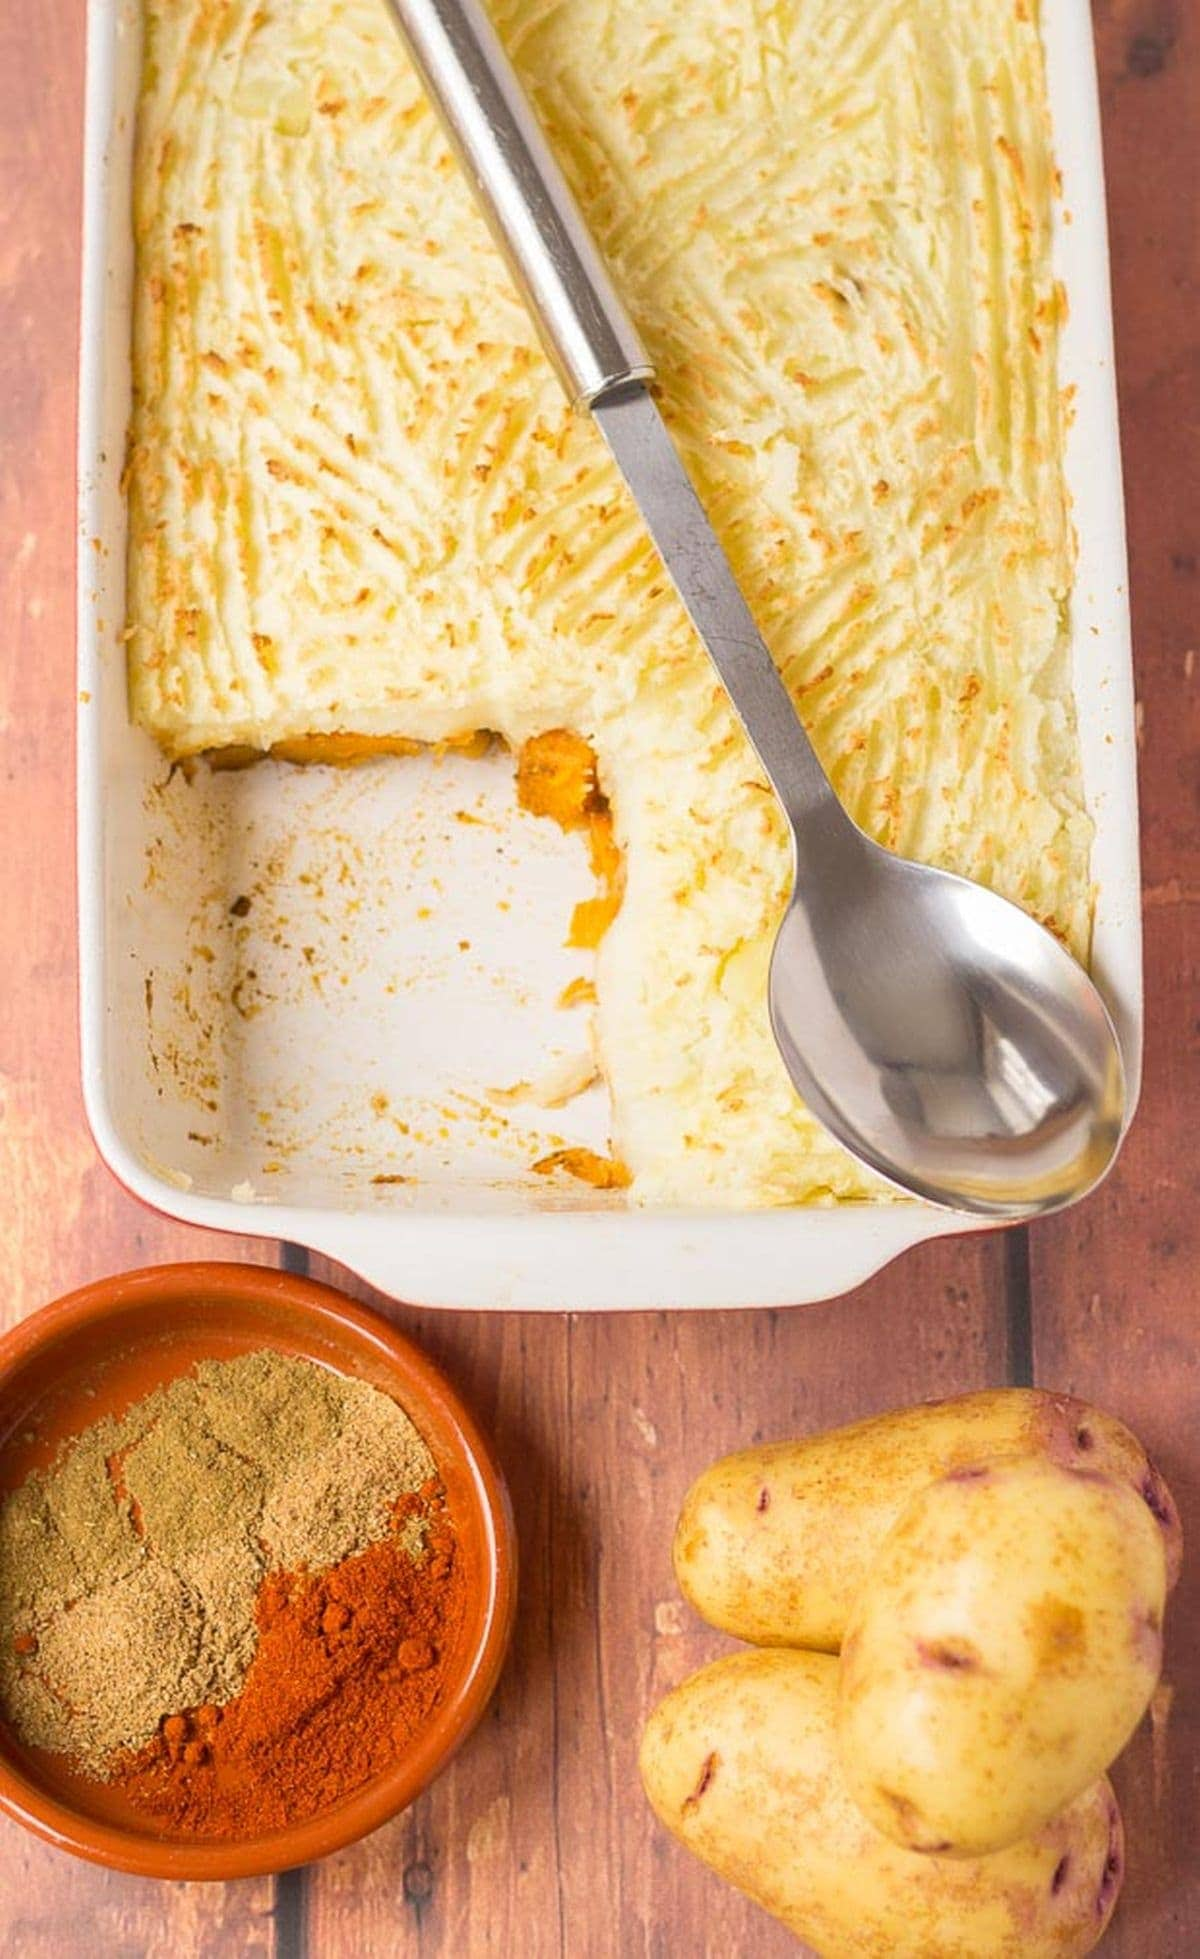 Birds eye view of spiced butternut squash bake casserole with a spoon lying over the top and a portion taken out. Potatoes and a dish of spices at the bottom.